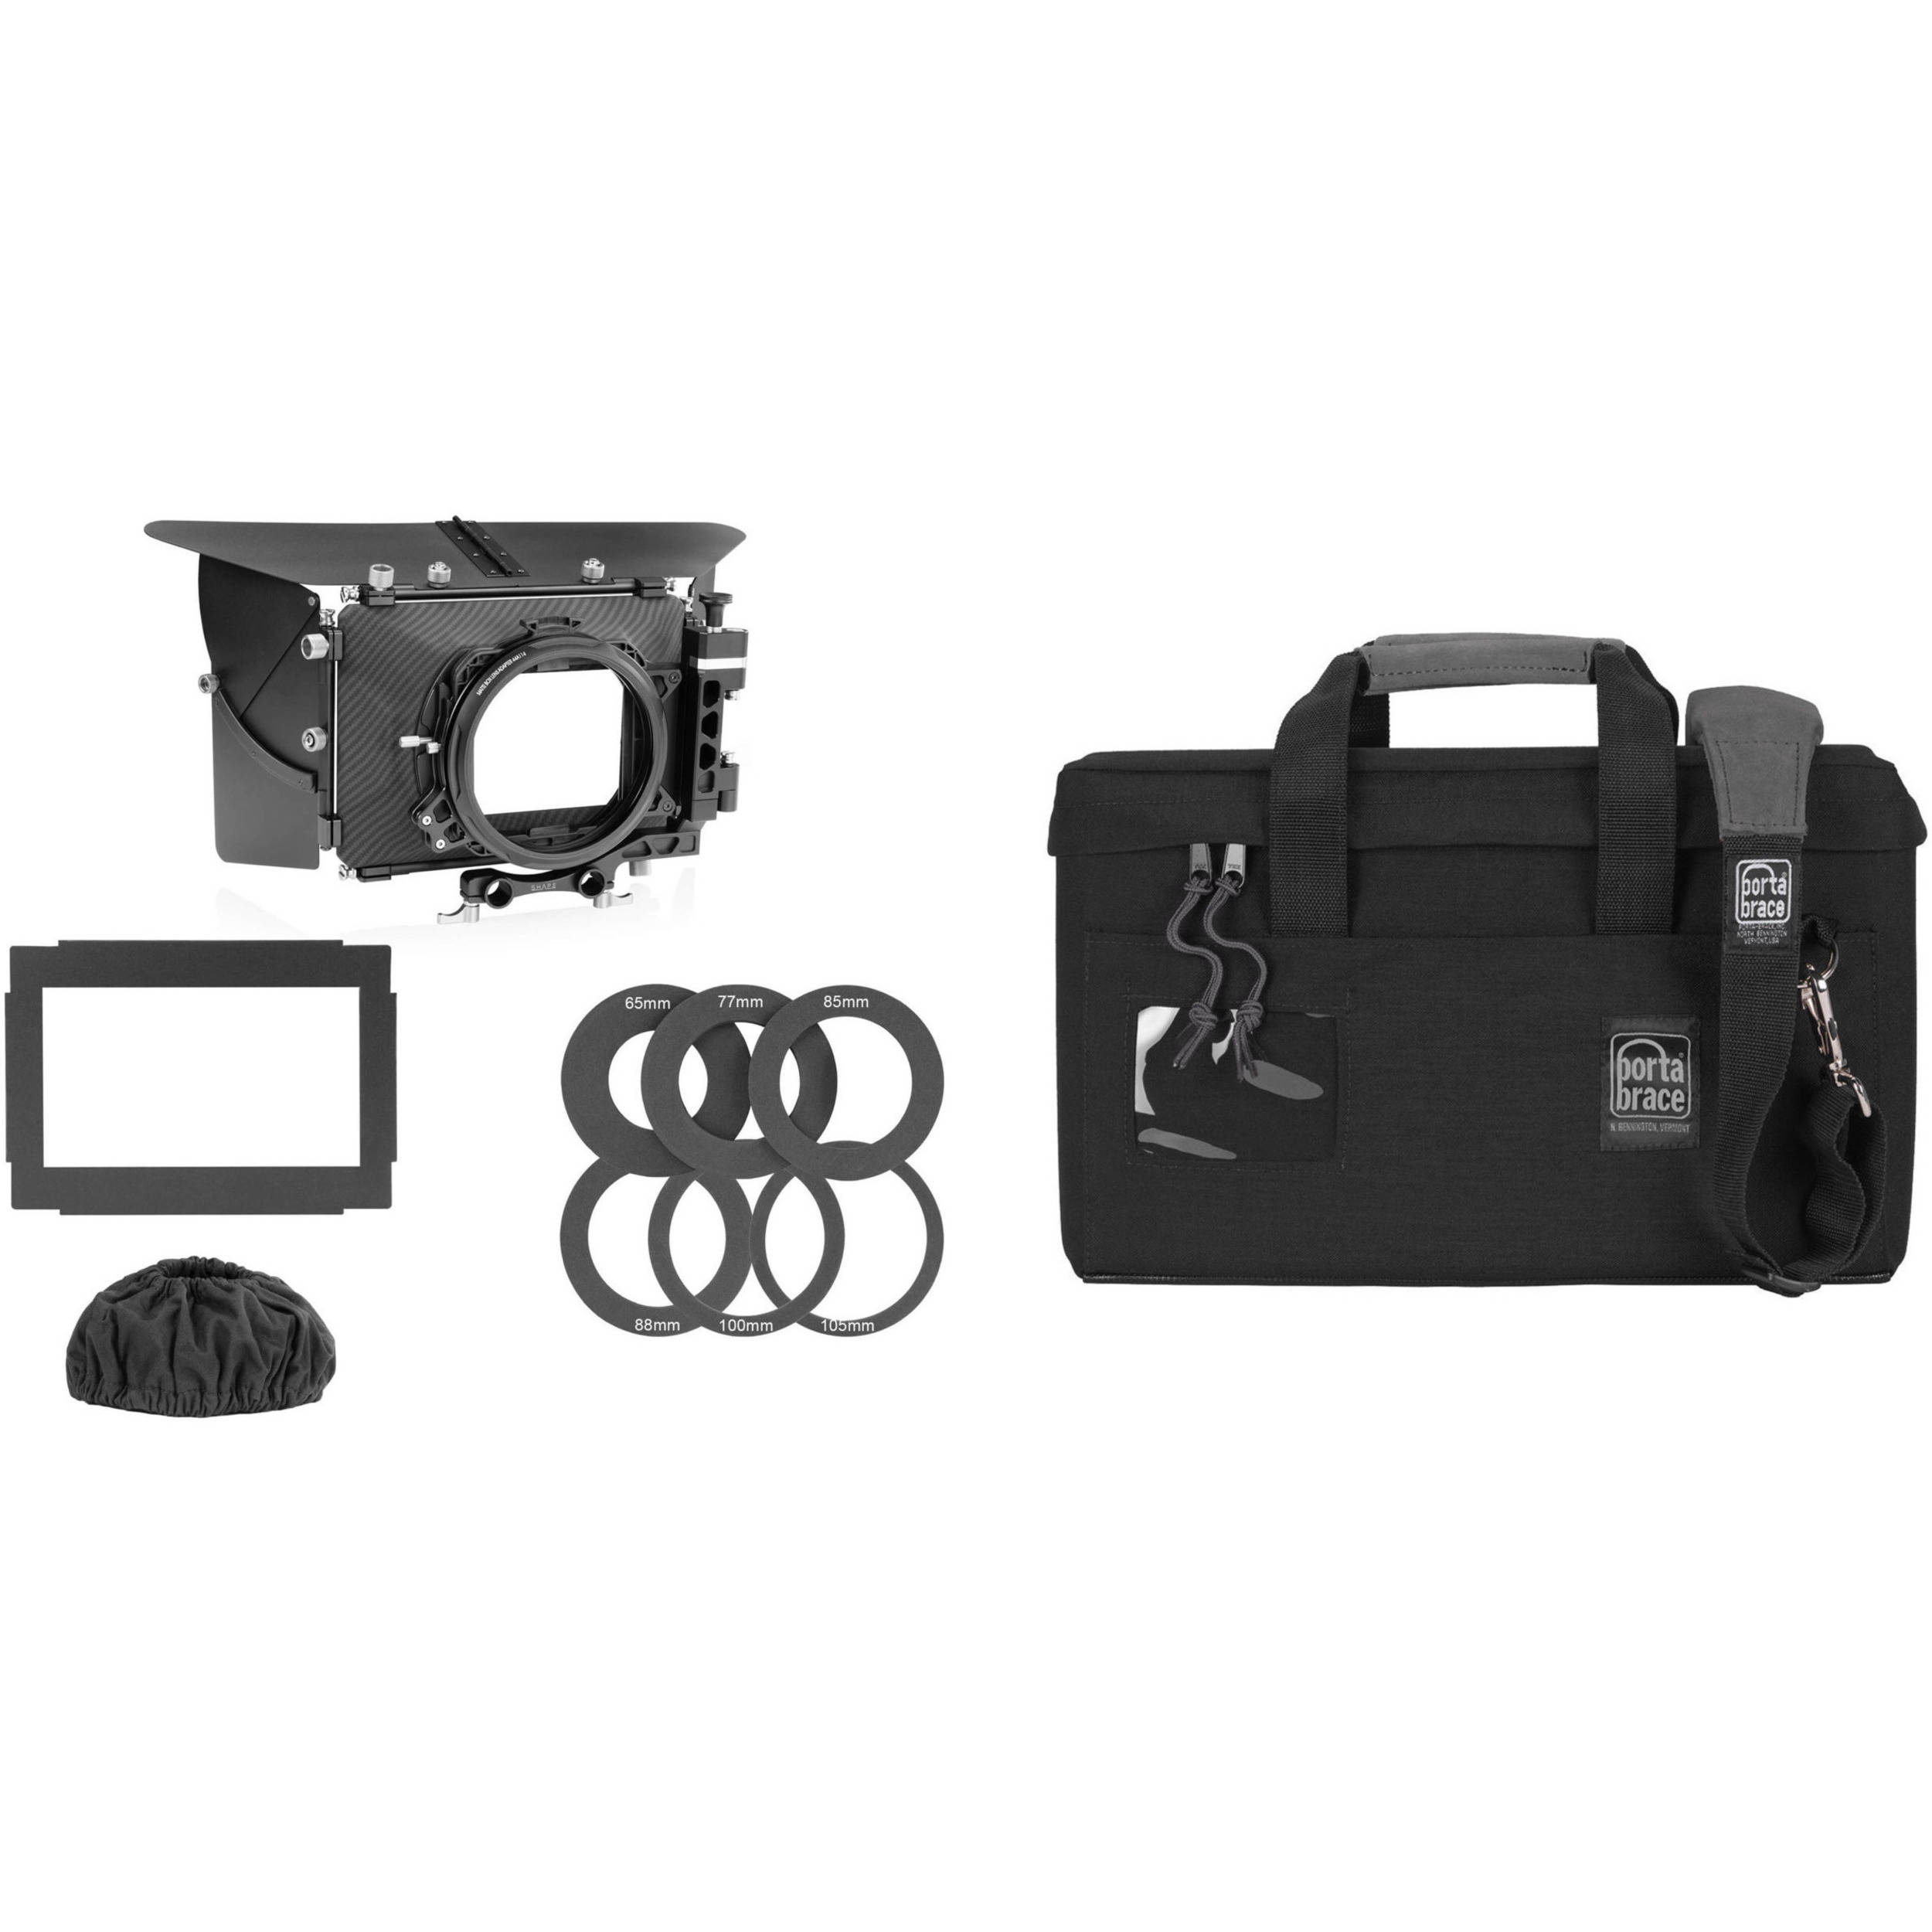 shape 2 stage 4 x 4 matte box with porta brace mb 1b case. Black Bedroom Furniture Sets. Home Design Ideas